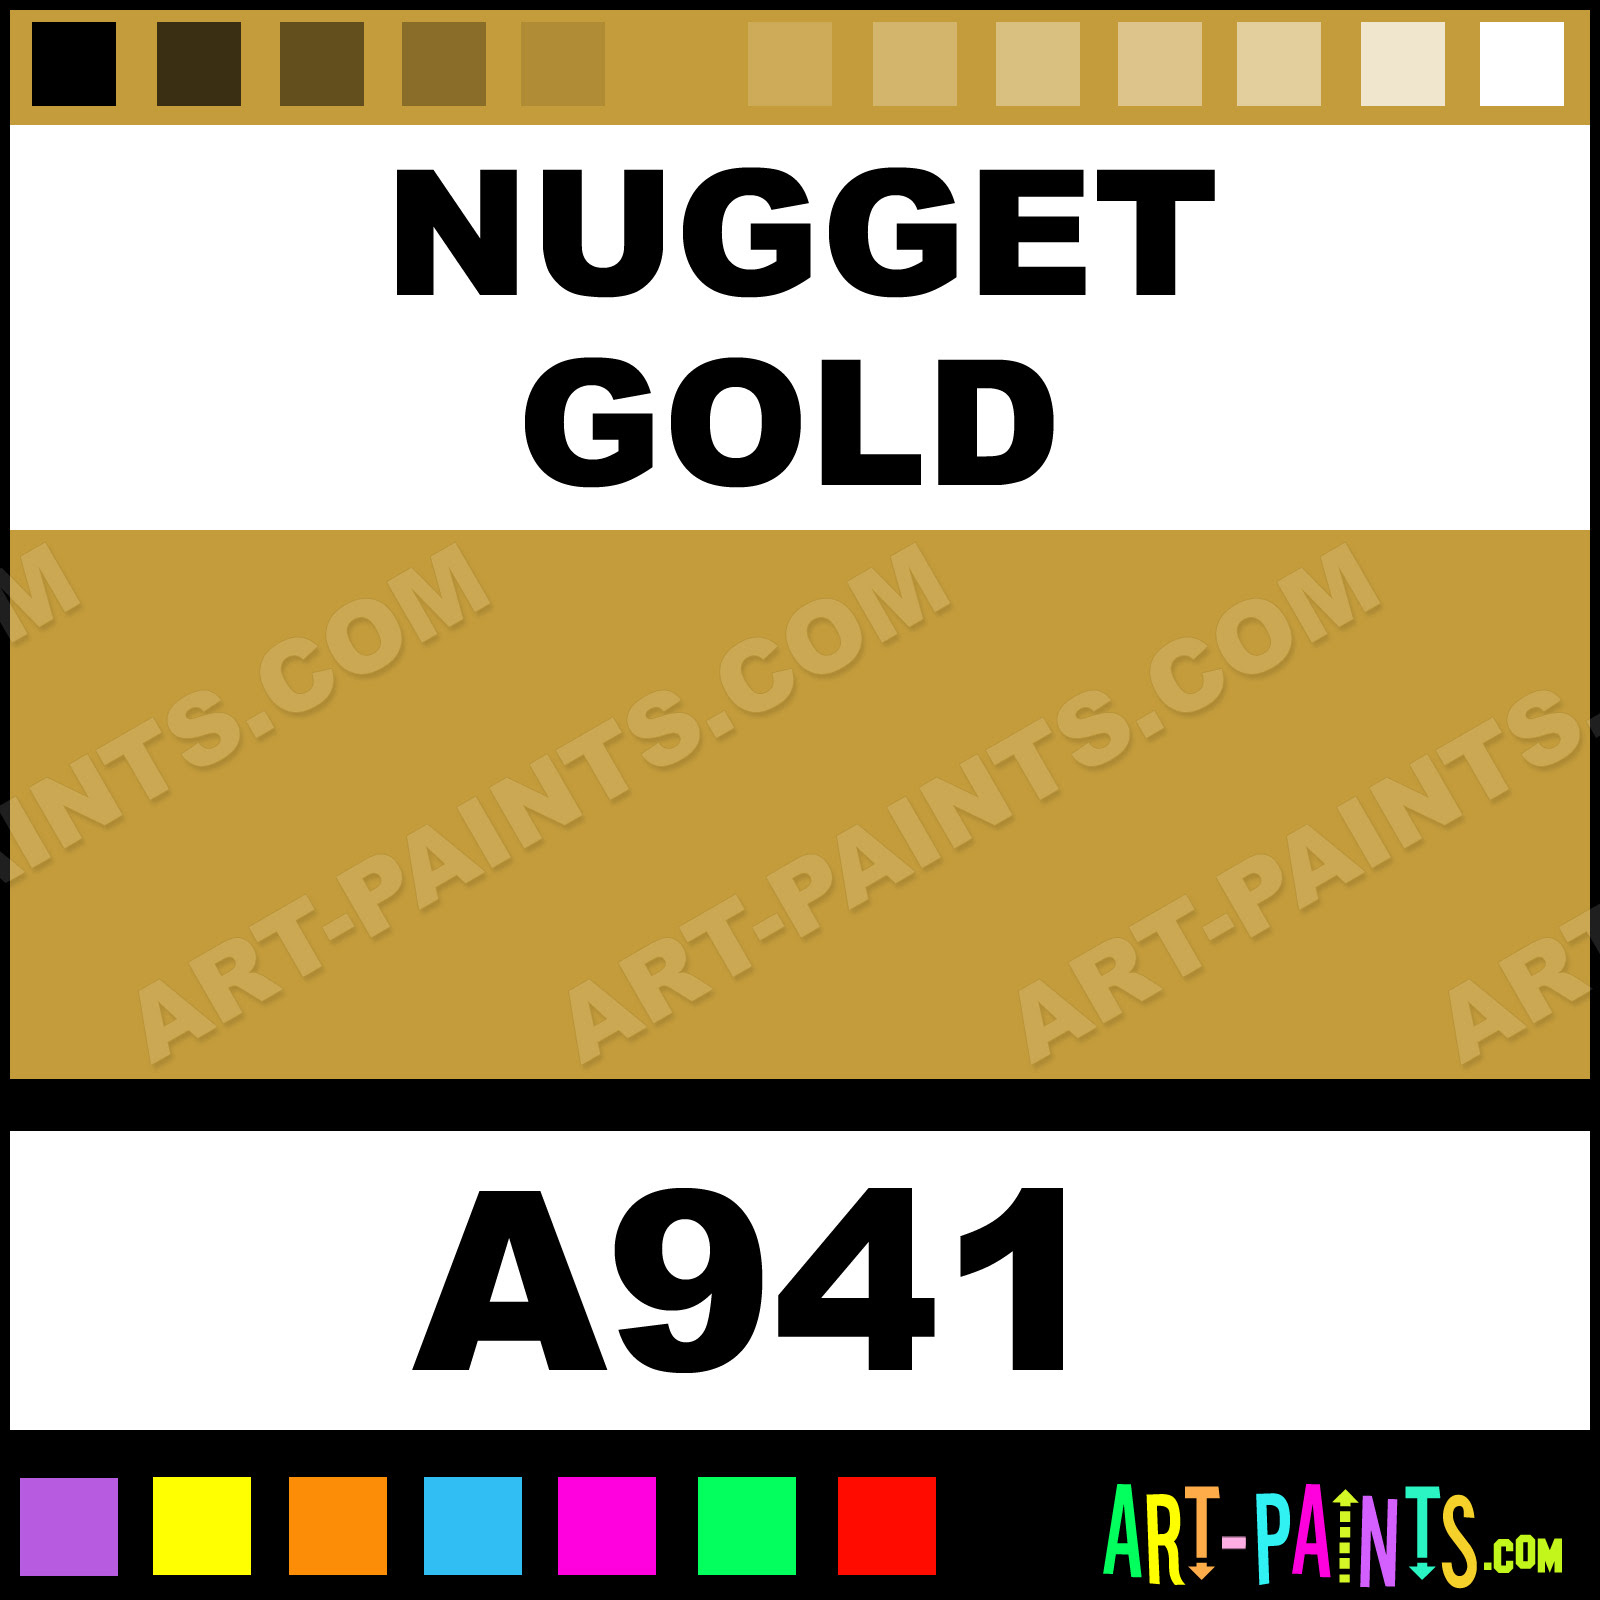 Download Nugget Gold Ultra Ceramic Ceramic Porcelain Paints - A941 - Nugget Gold Paint, Nugget Gold Color ...